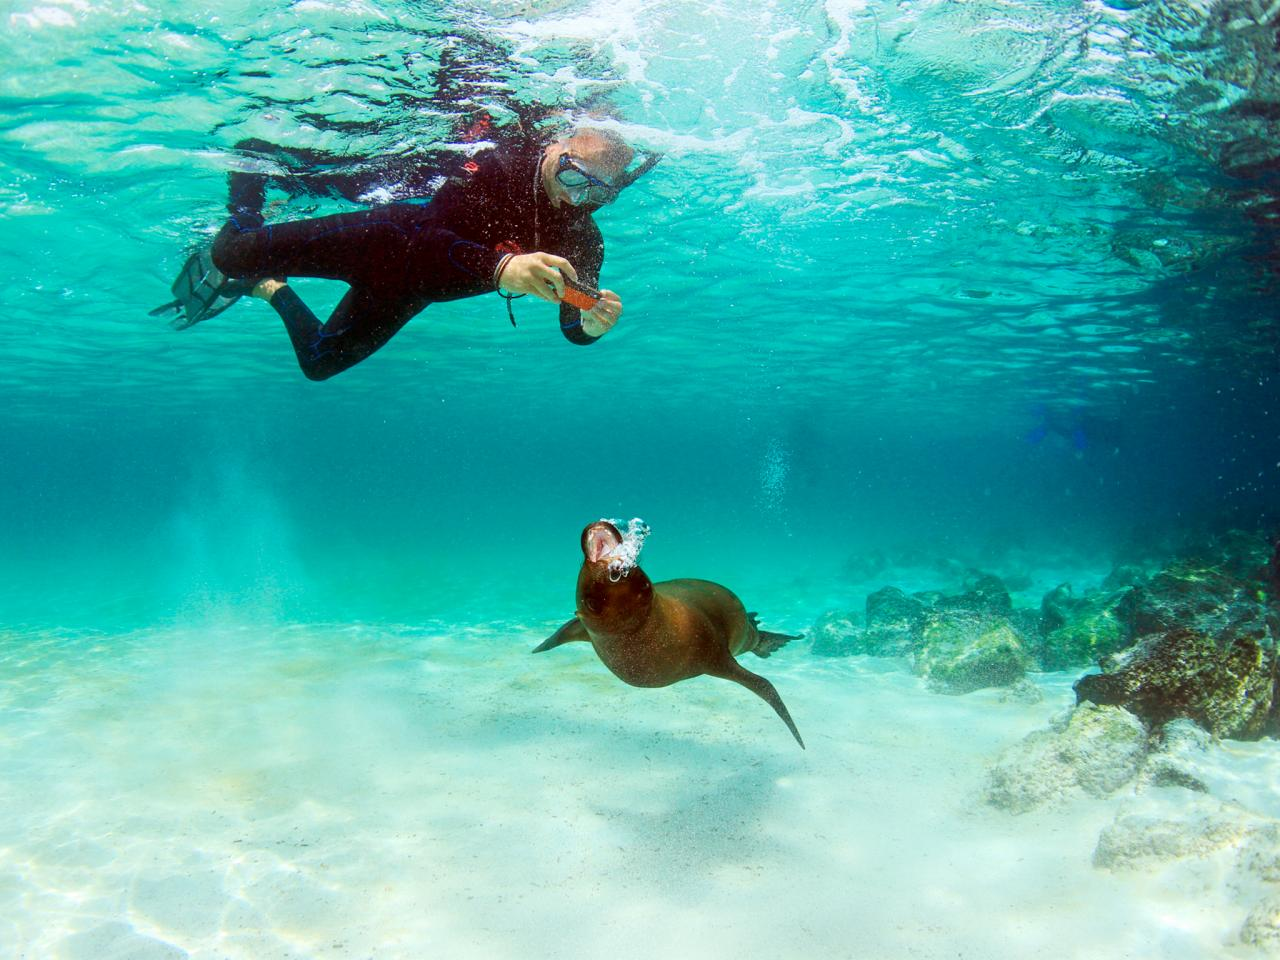 Galapagos-islands-a-la-eco-cruise - 5 Adventure International Holiday Destinations